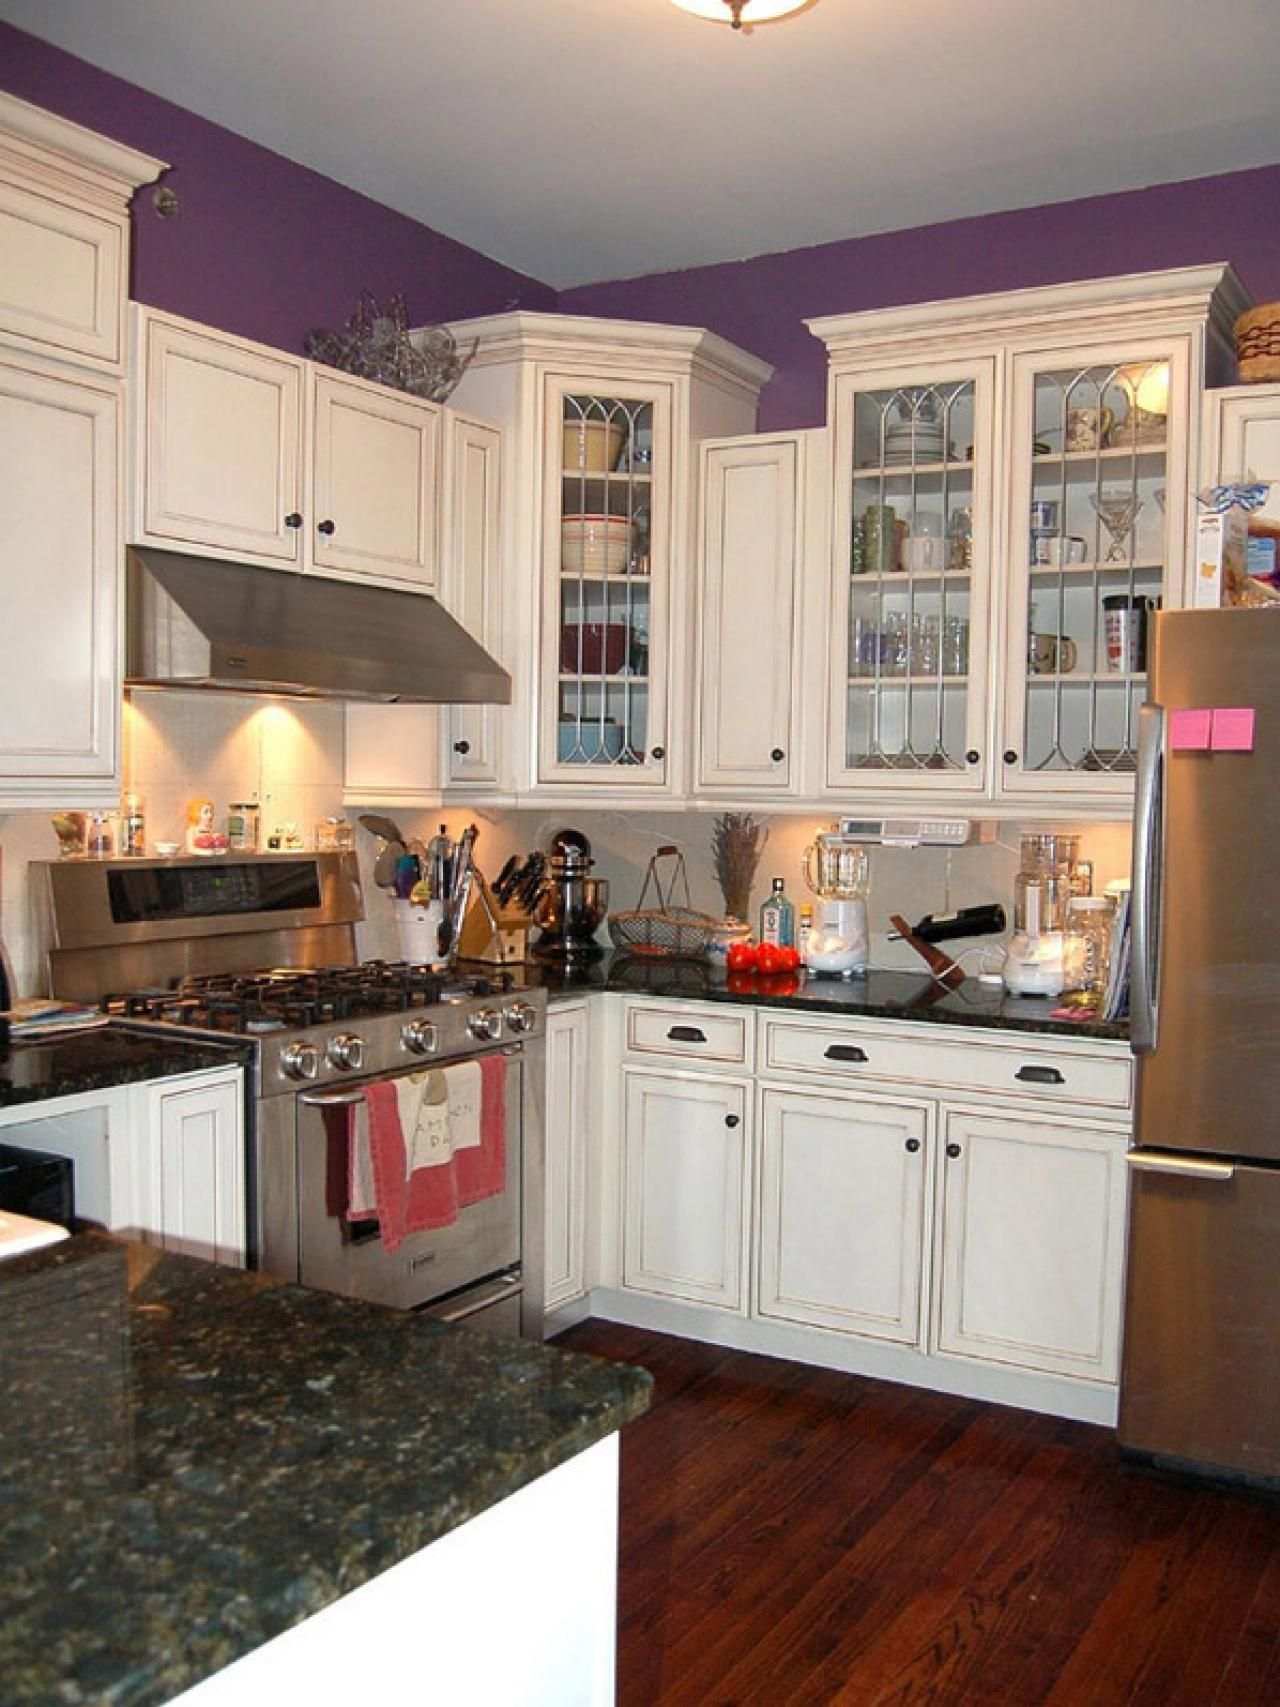 25 Purple Kitchen Designs Purple. Tiling A Kitchen Wall Design Ideas. Best 25 Kitchen Wall Tiles Ideas Ondark Grey White. Best 25 Black Subway Tiles Ideas That You Will Like On